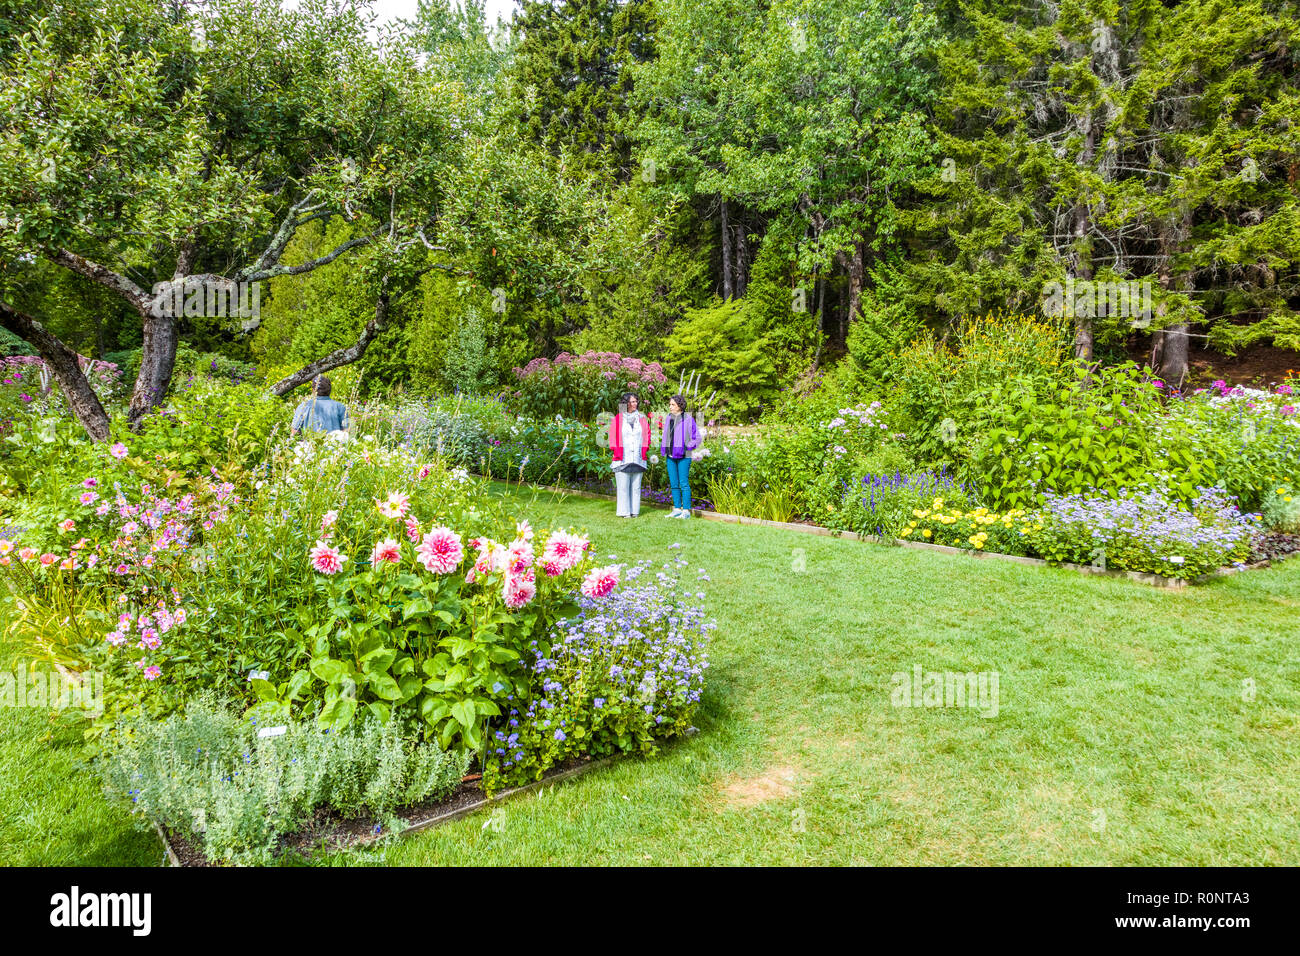 Thuya Garden in Northeast Harbor on Mount Desert Island in Maine, United States Stock Photo